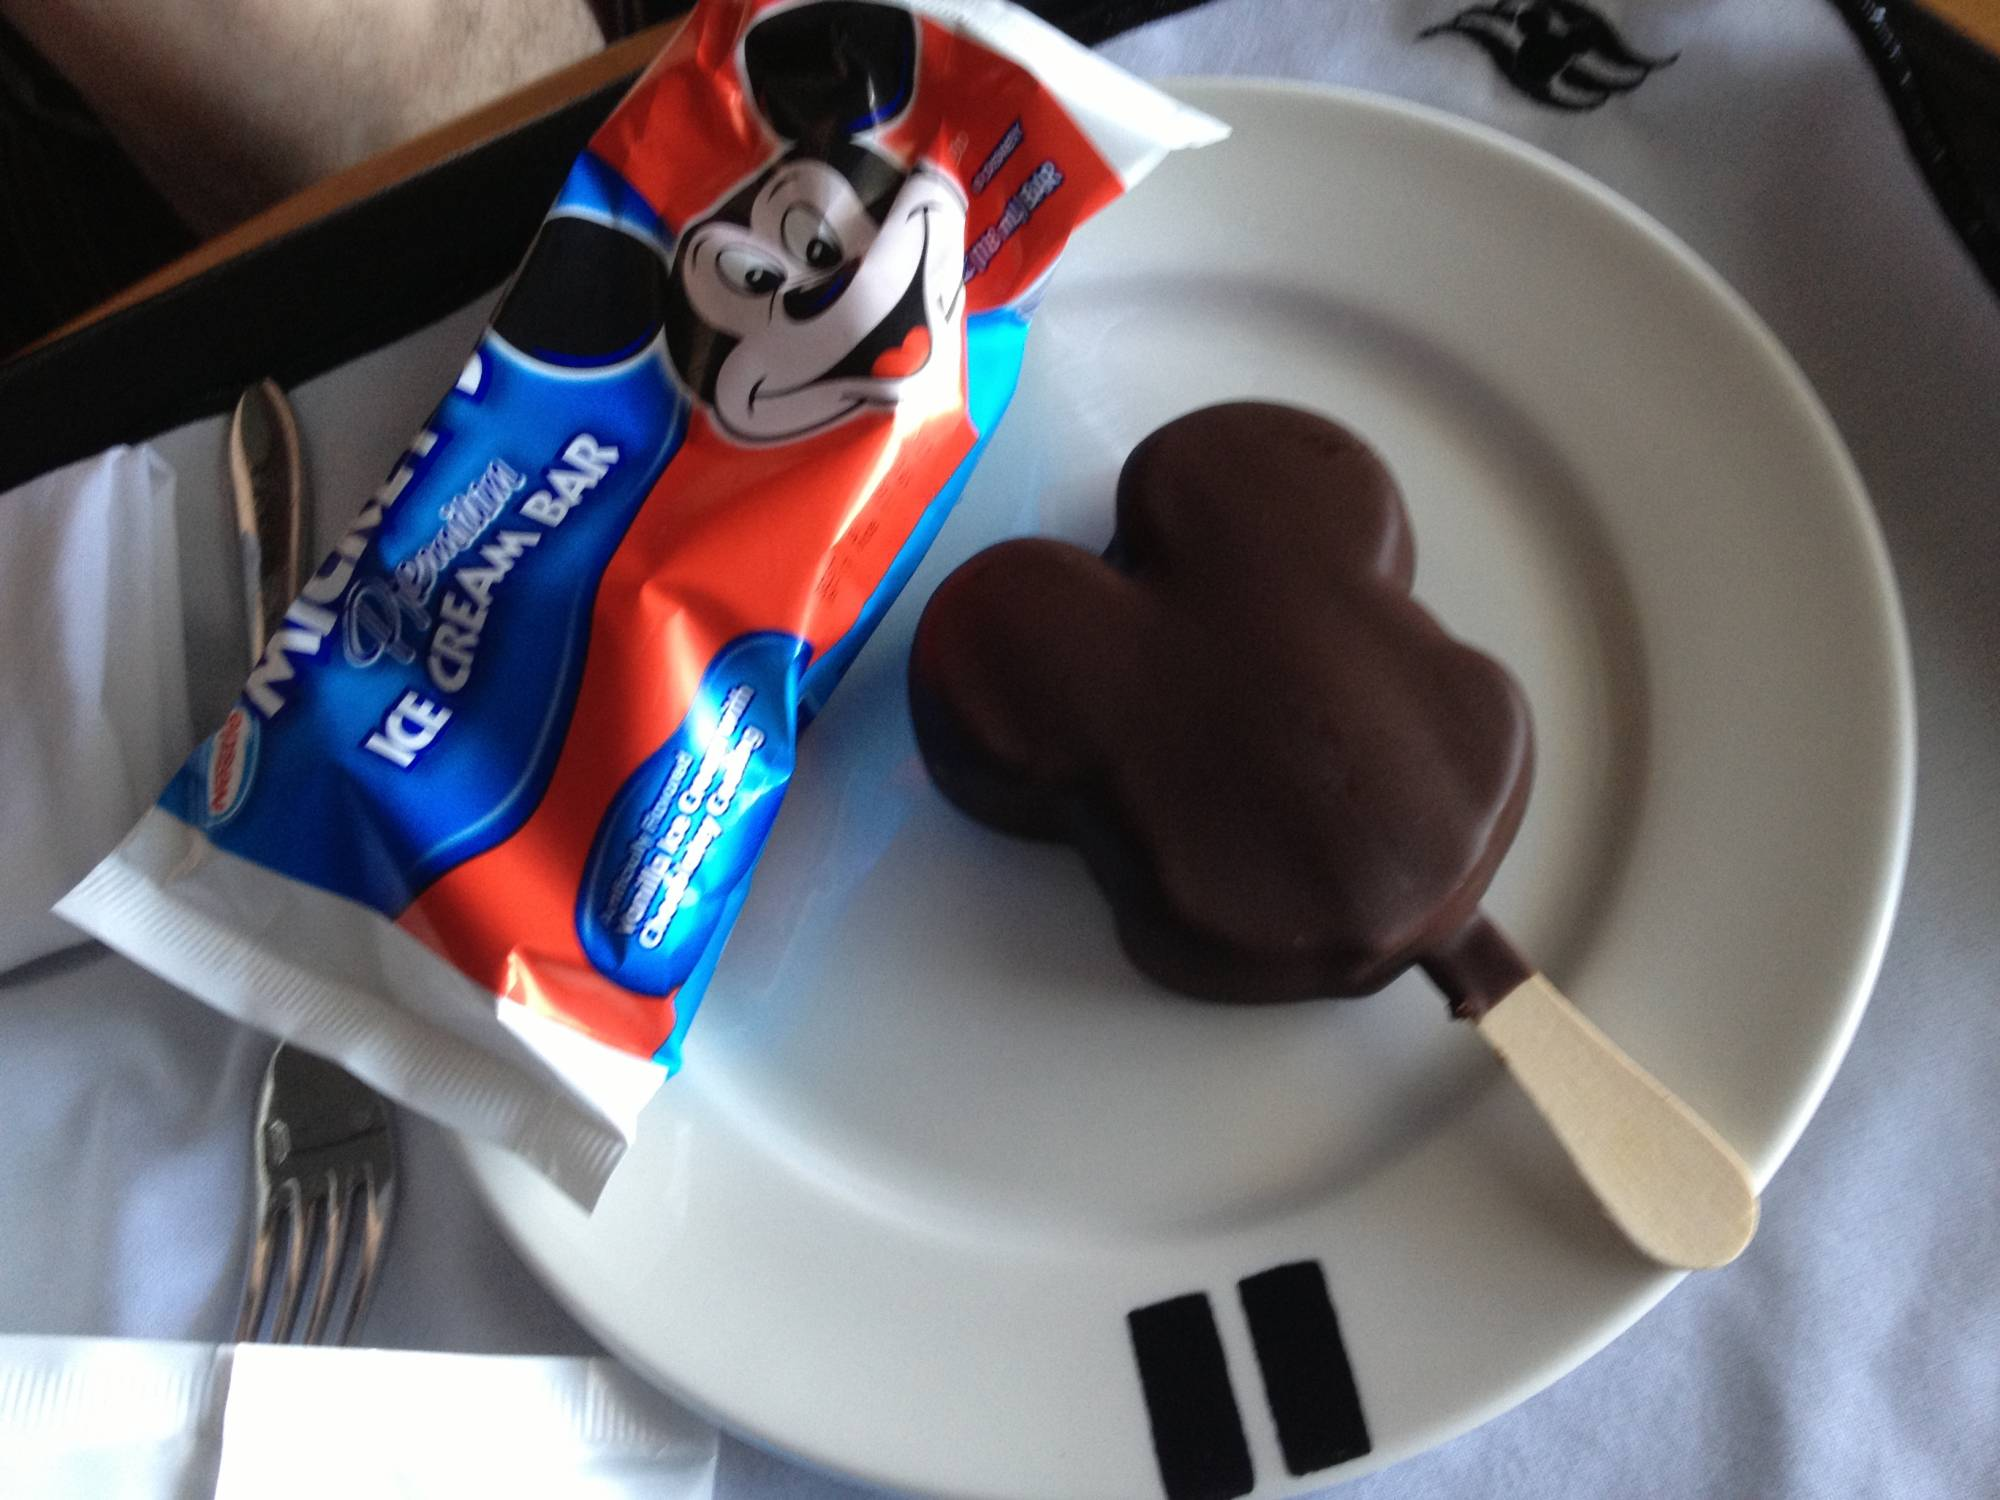 Learn how to sail safely with food allergies on Disney Cruise Line |PassPorter.com